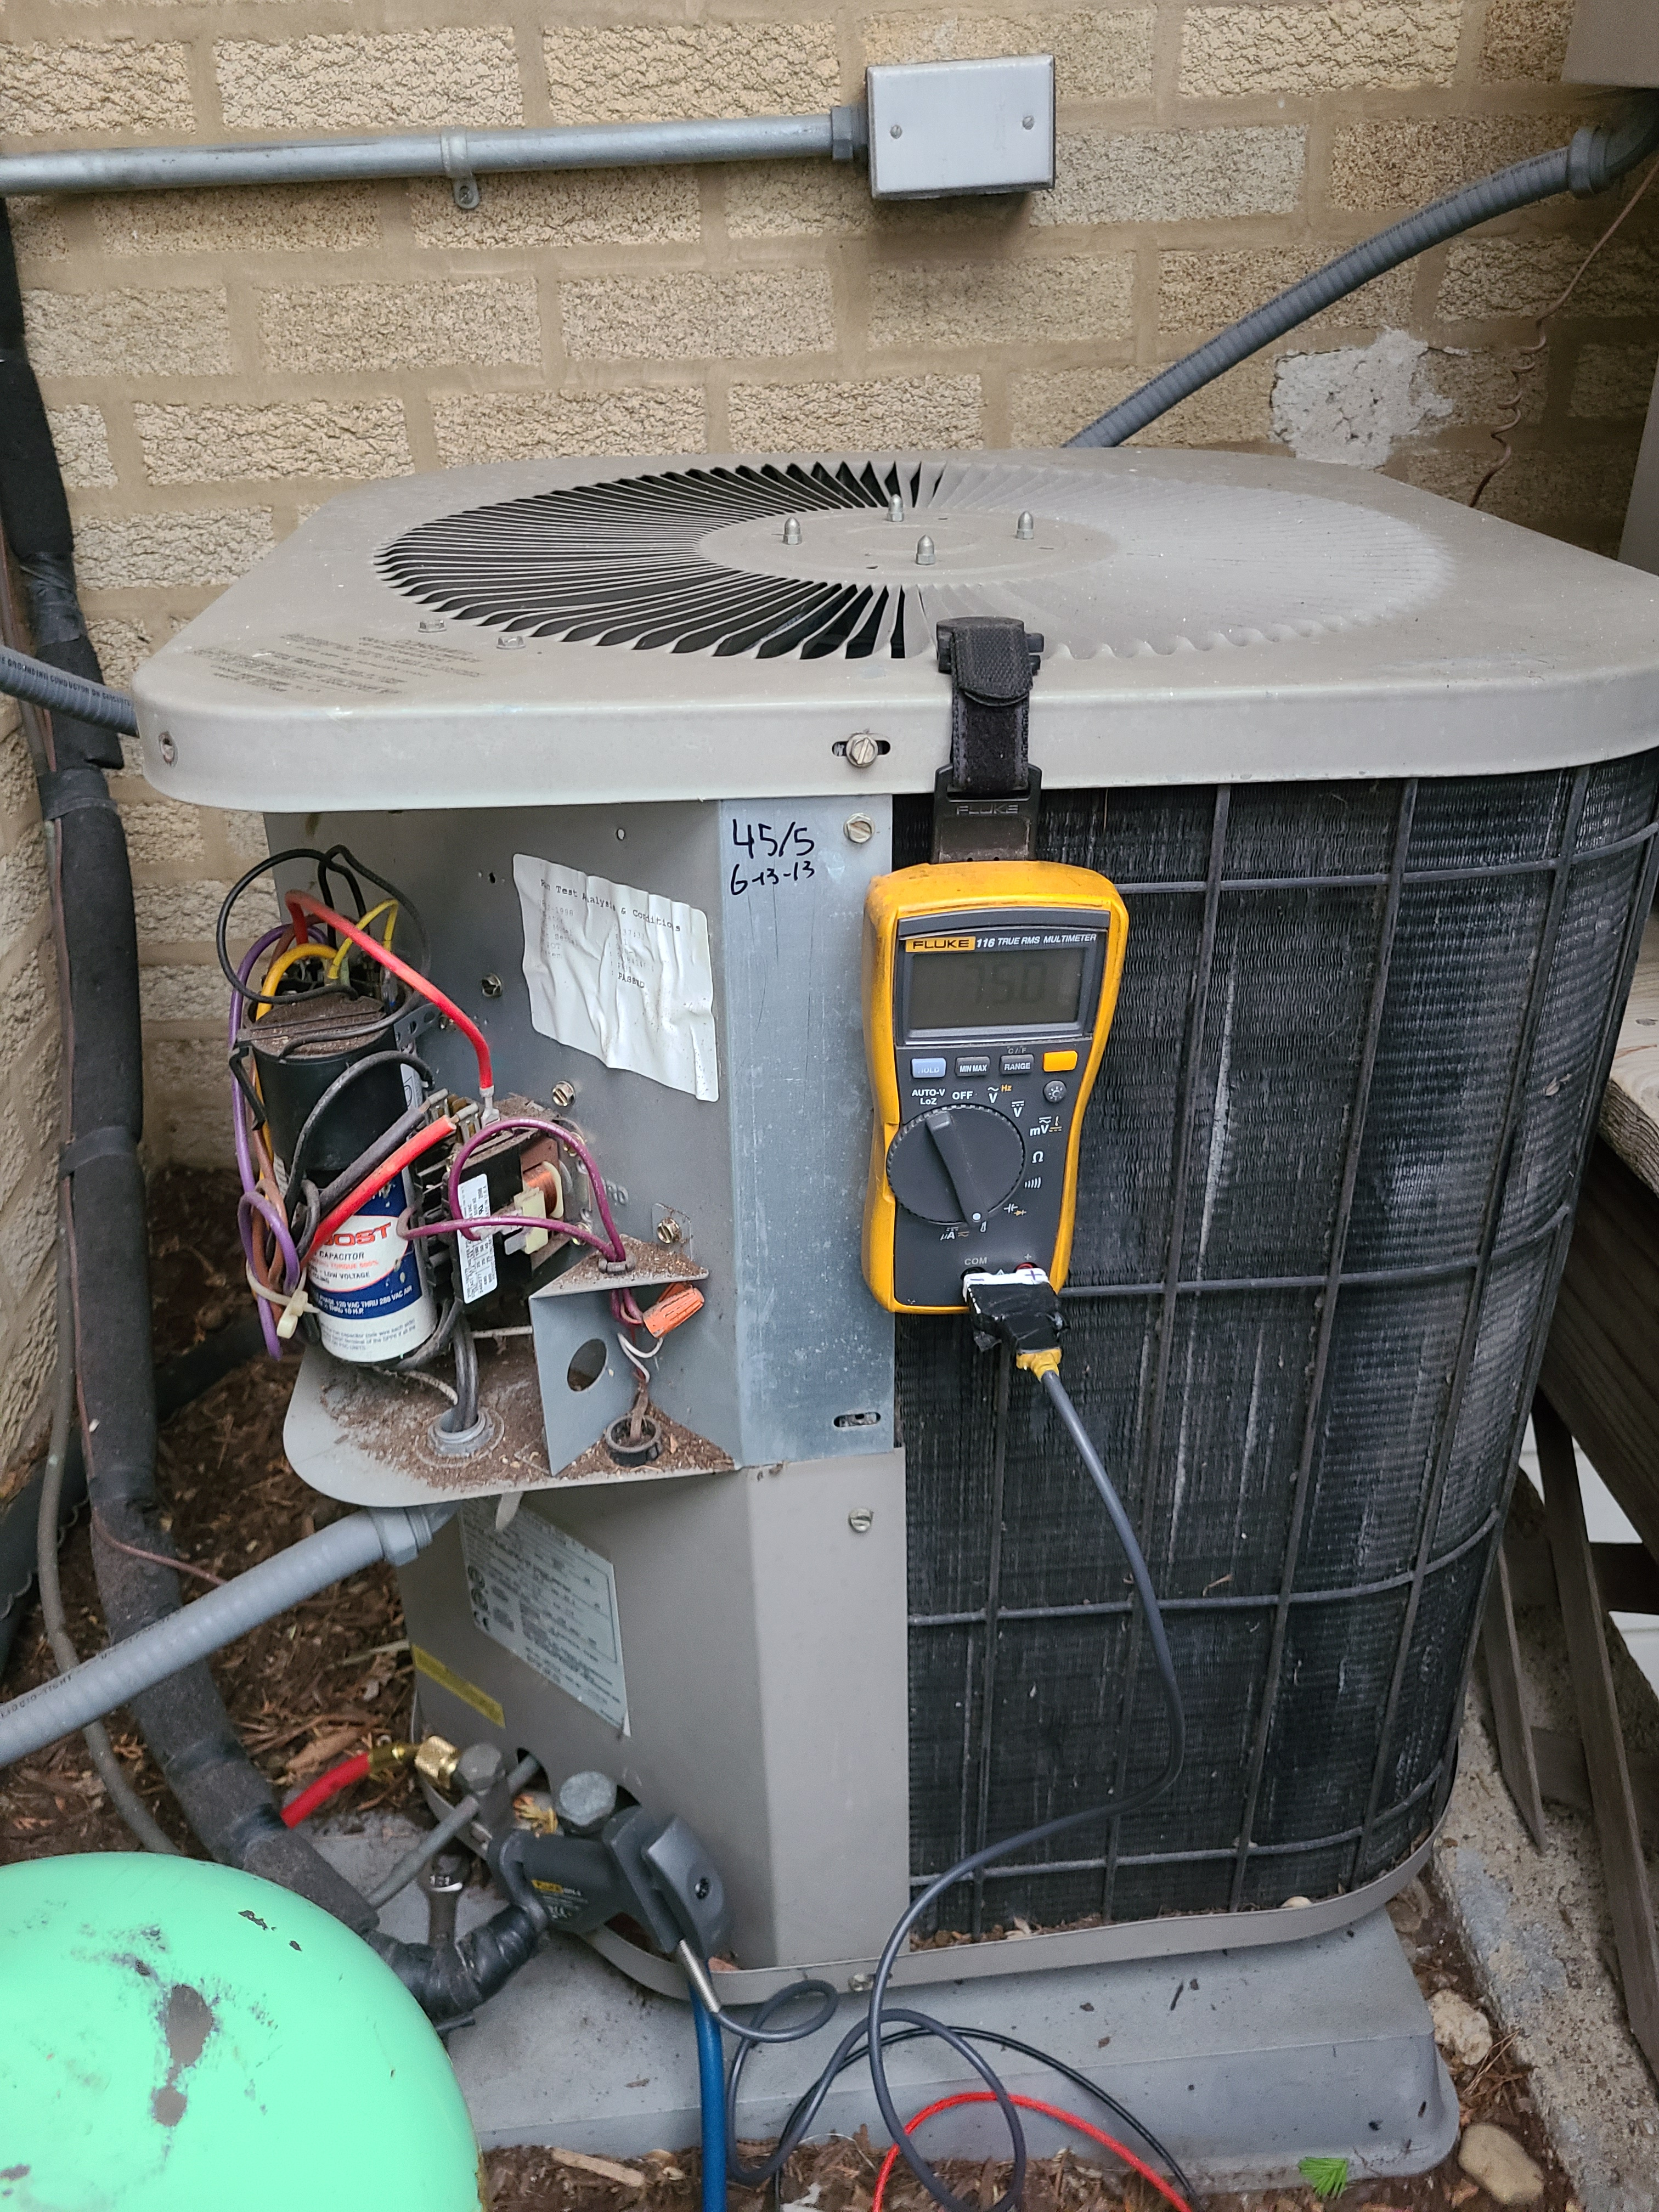 Goodman ac sytem recharged and repairs performed.